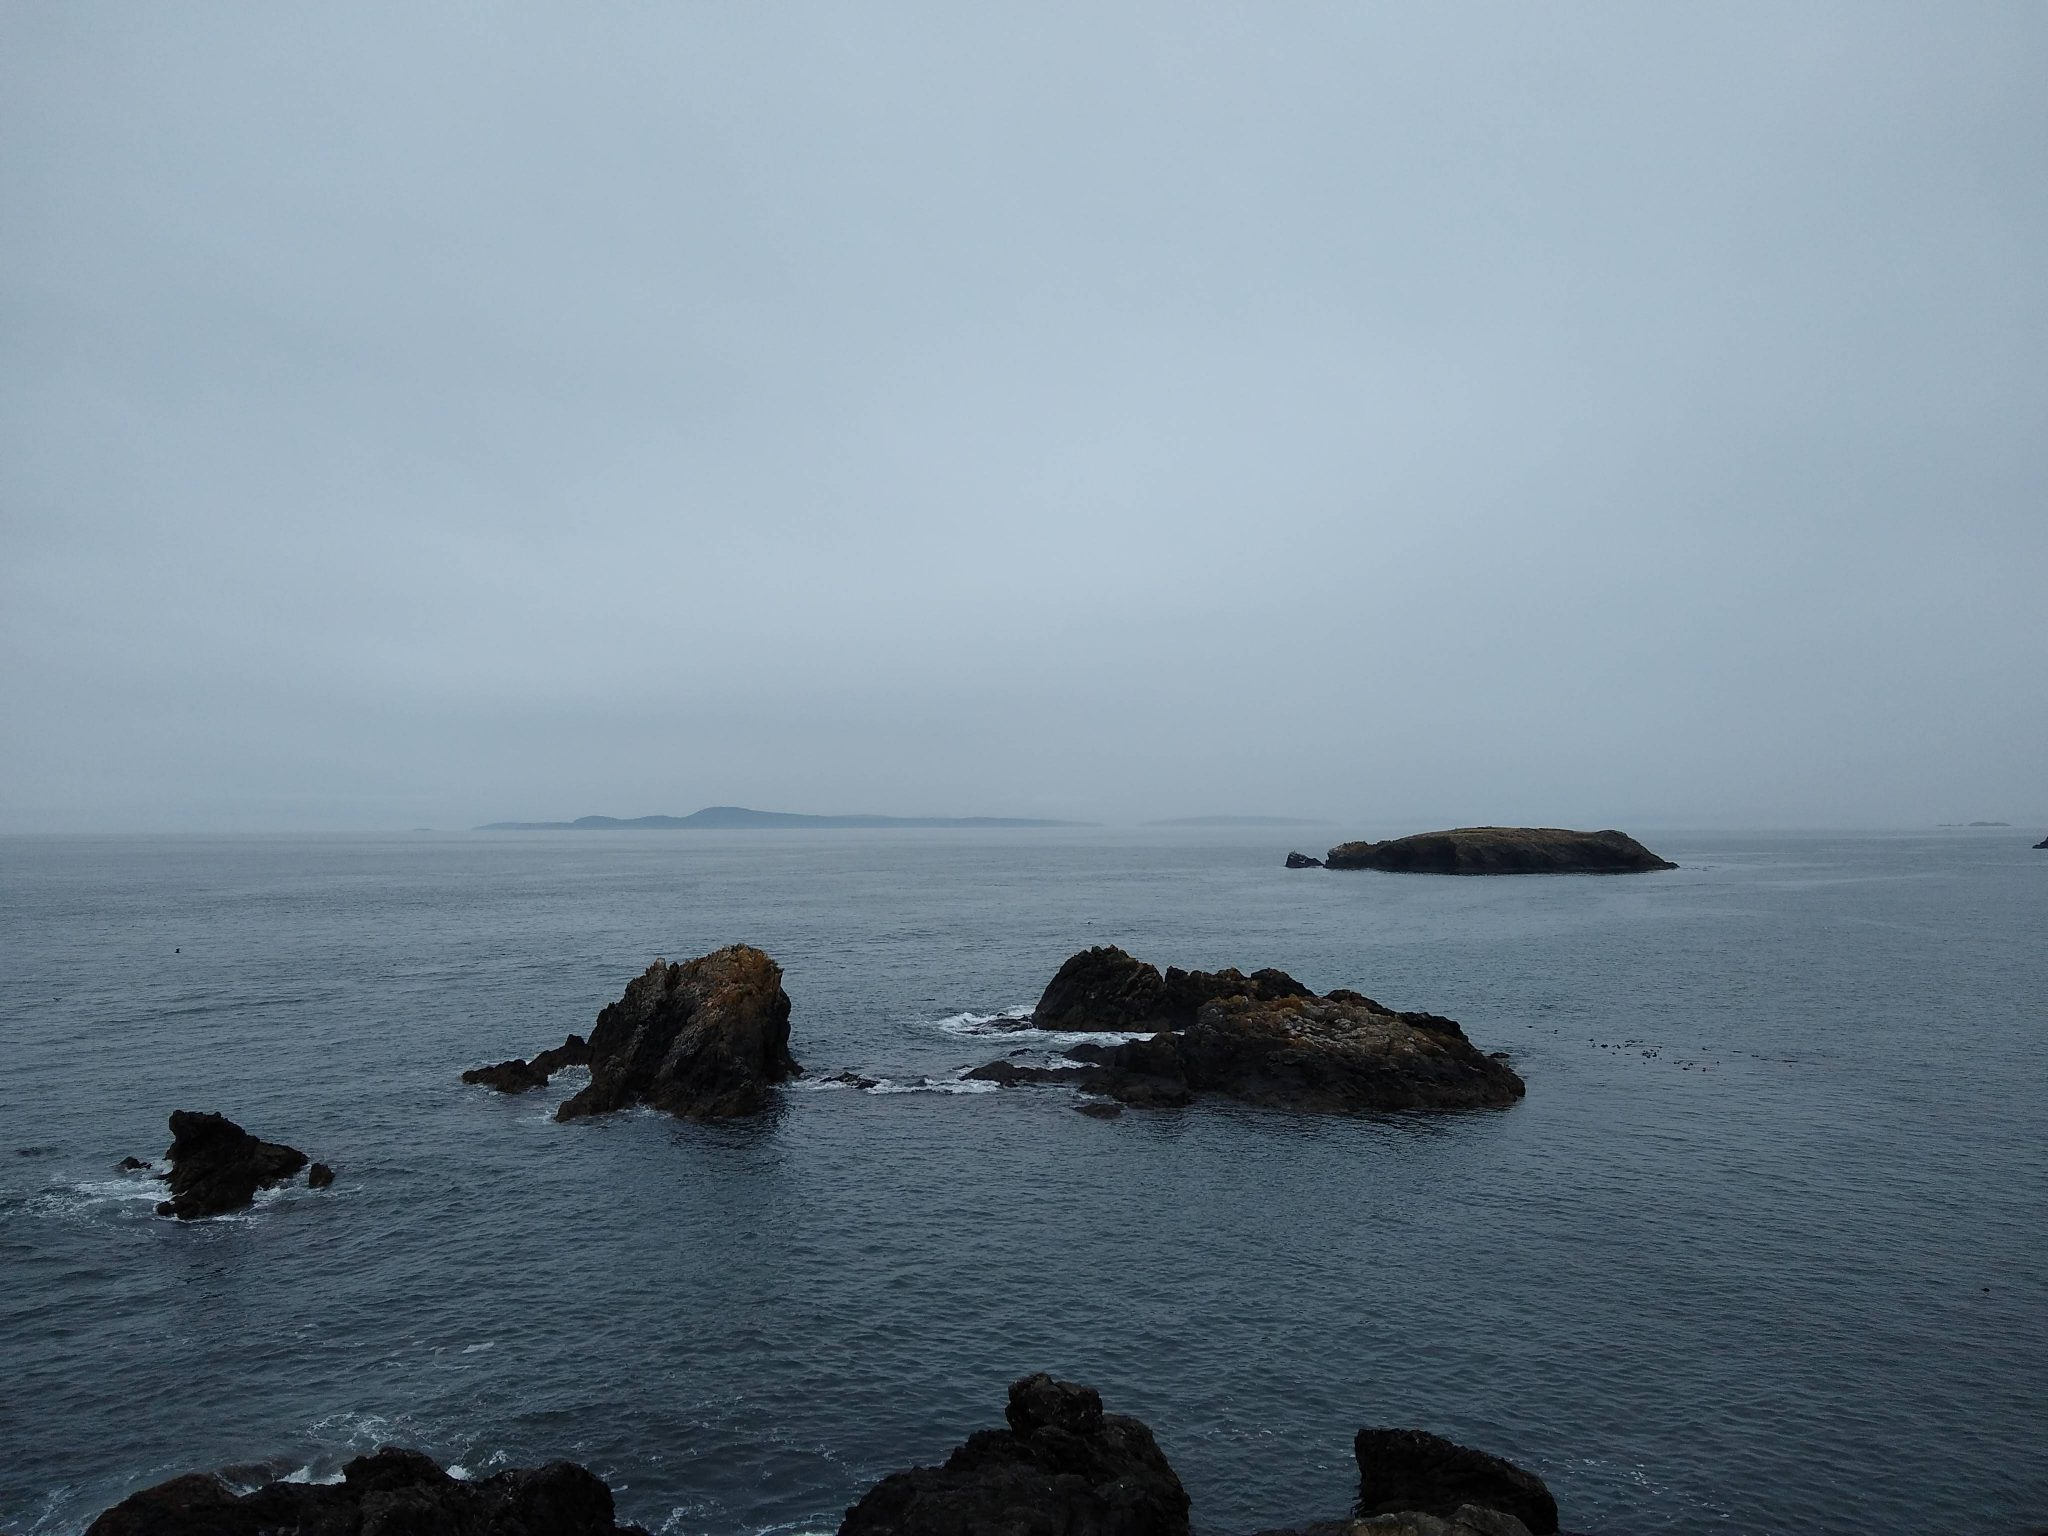 Small rocky islands in the water in Deception Pass state park. The sky and water are gray and foggy.